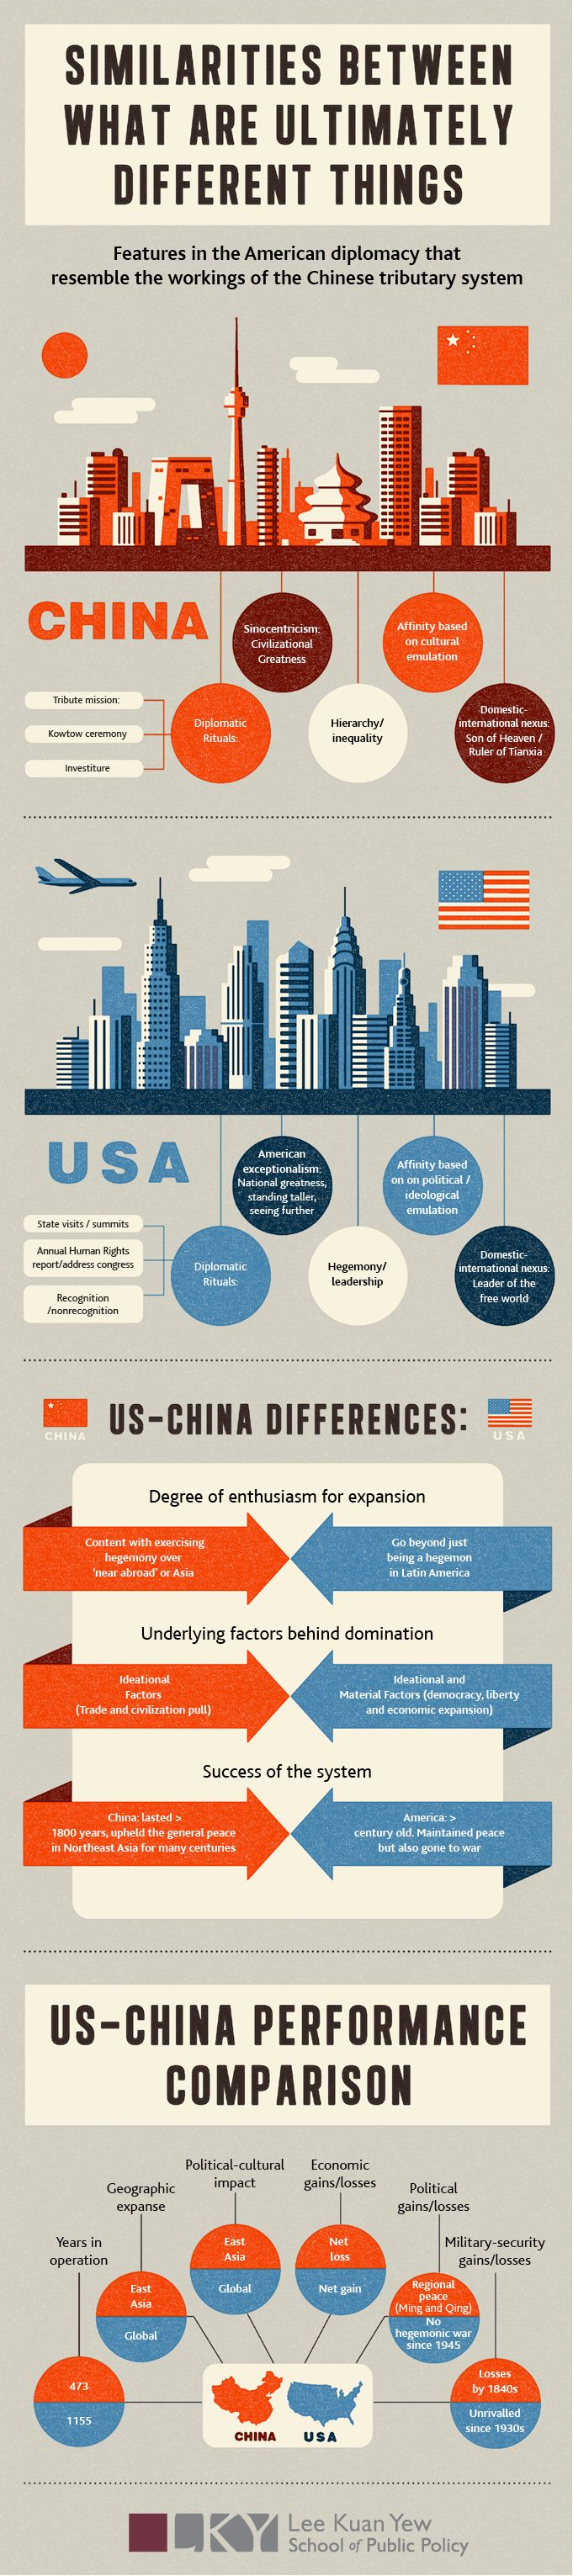 CHINA V USA Infographic.  Design: Russell Tate. www.RussellTate.com